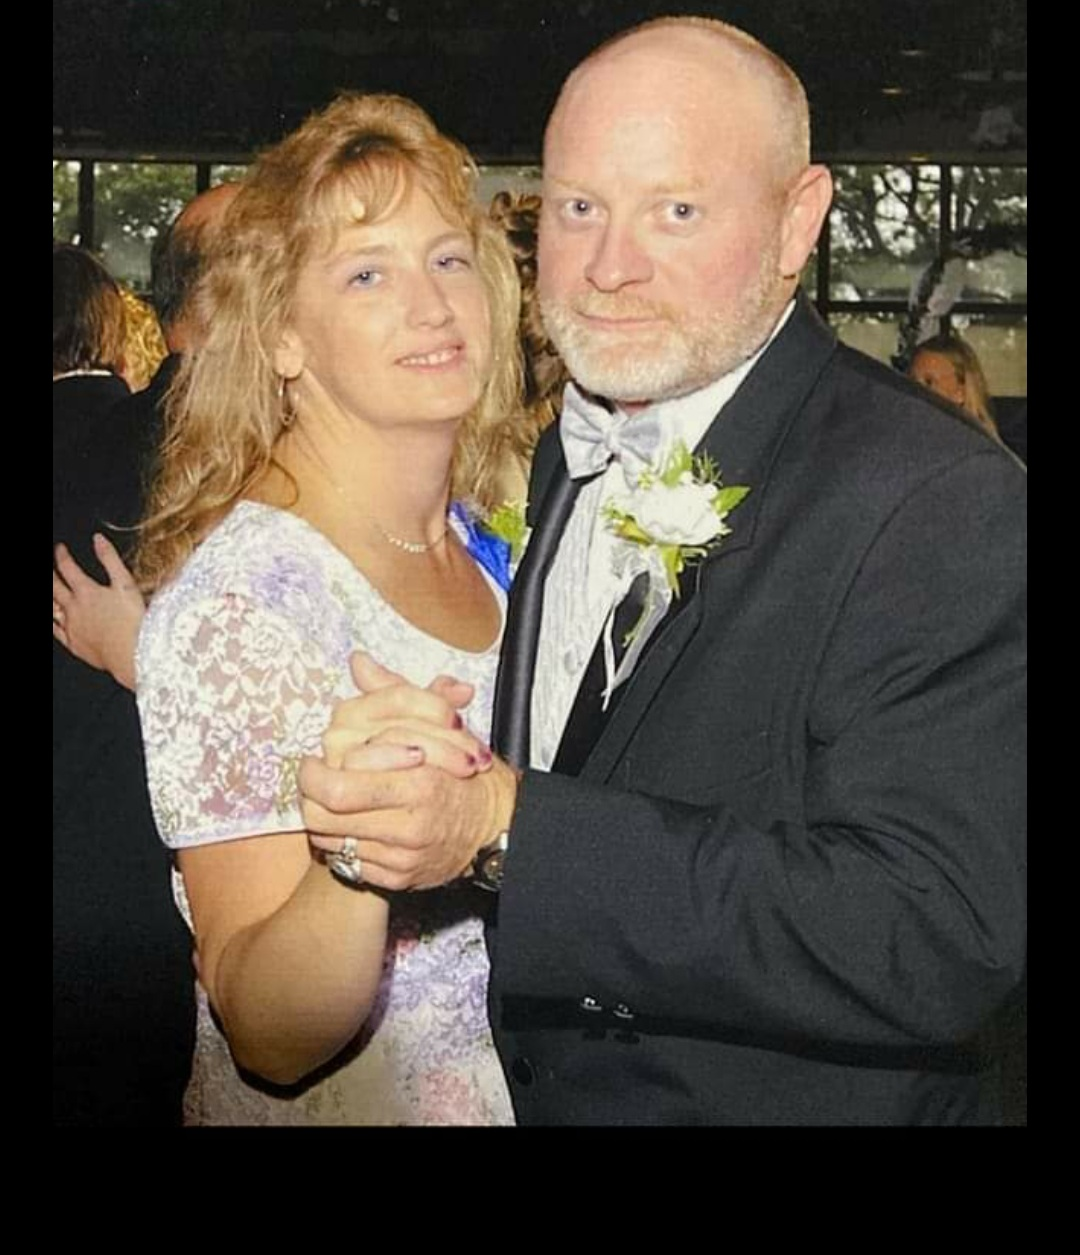 Tony and Rae at their daughters wedding